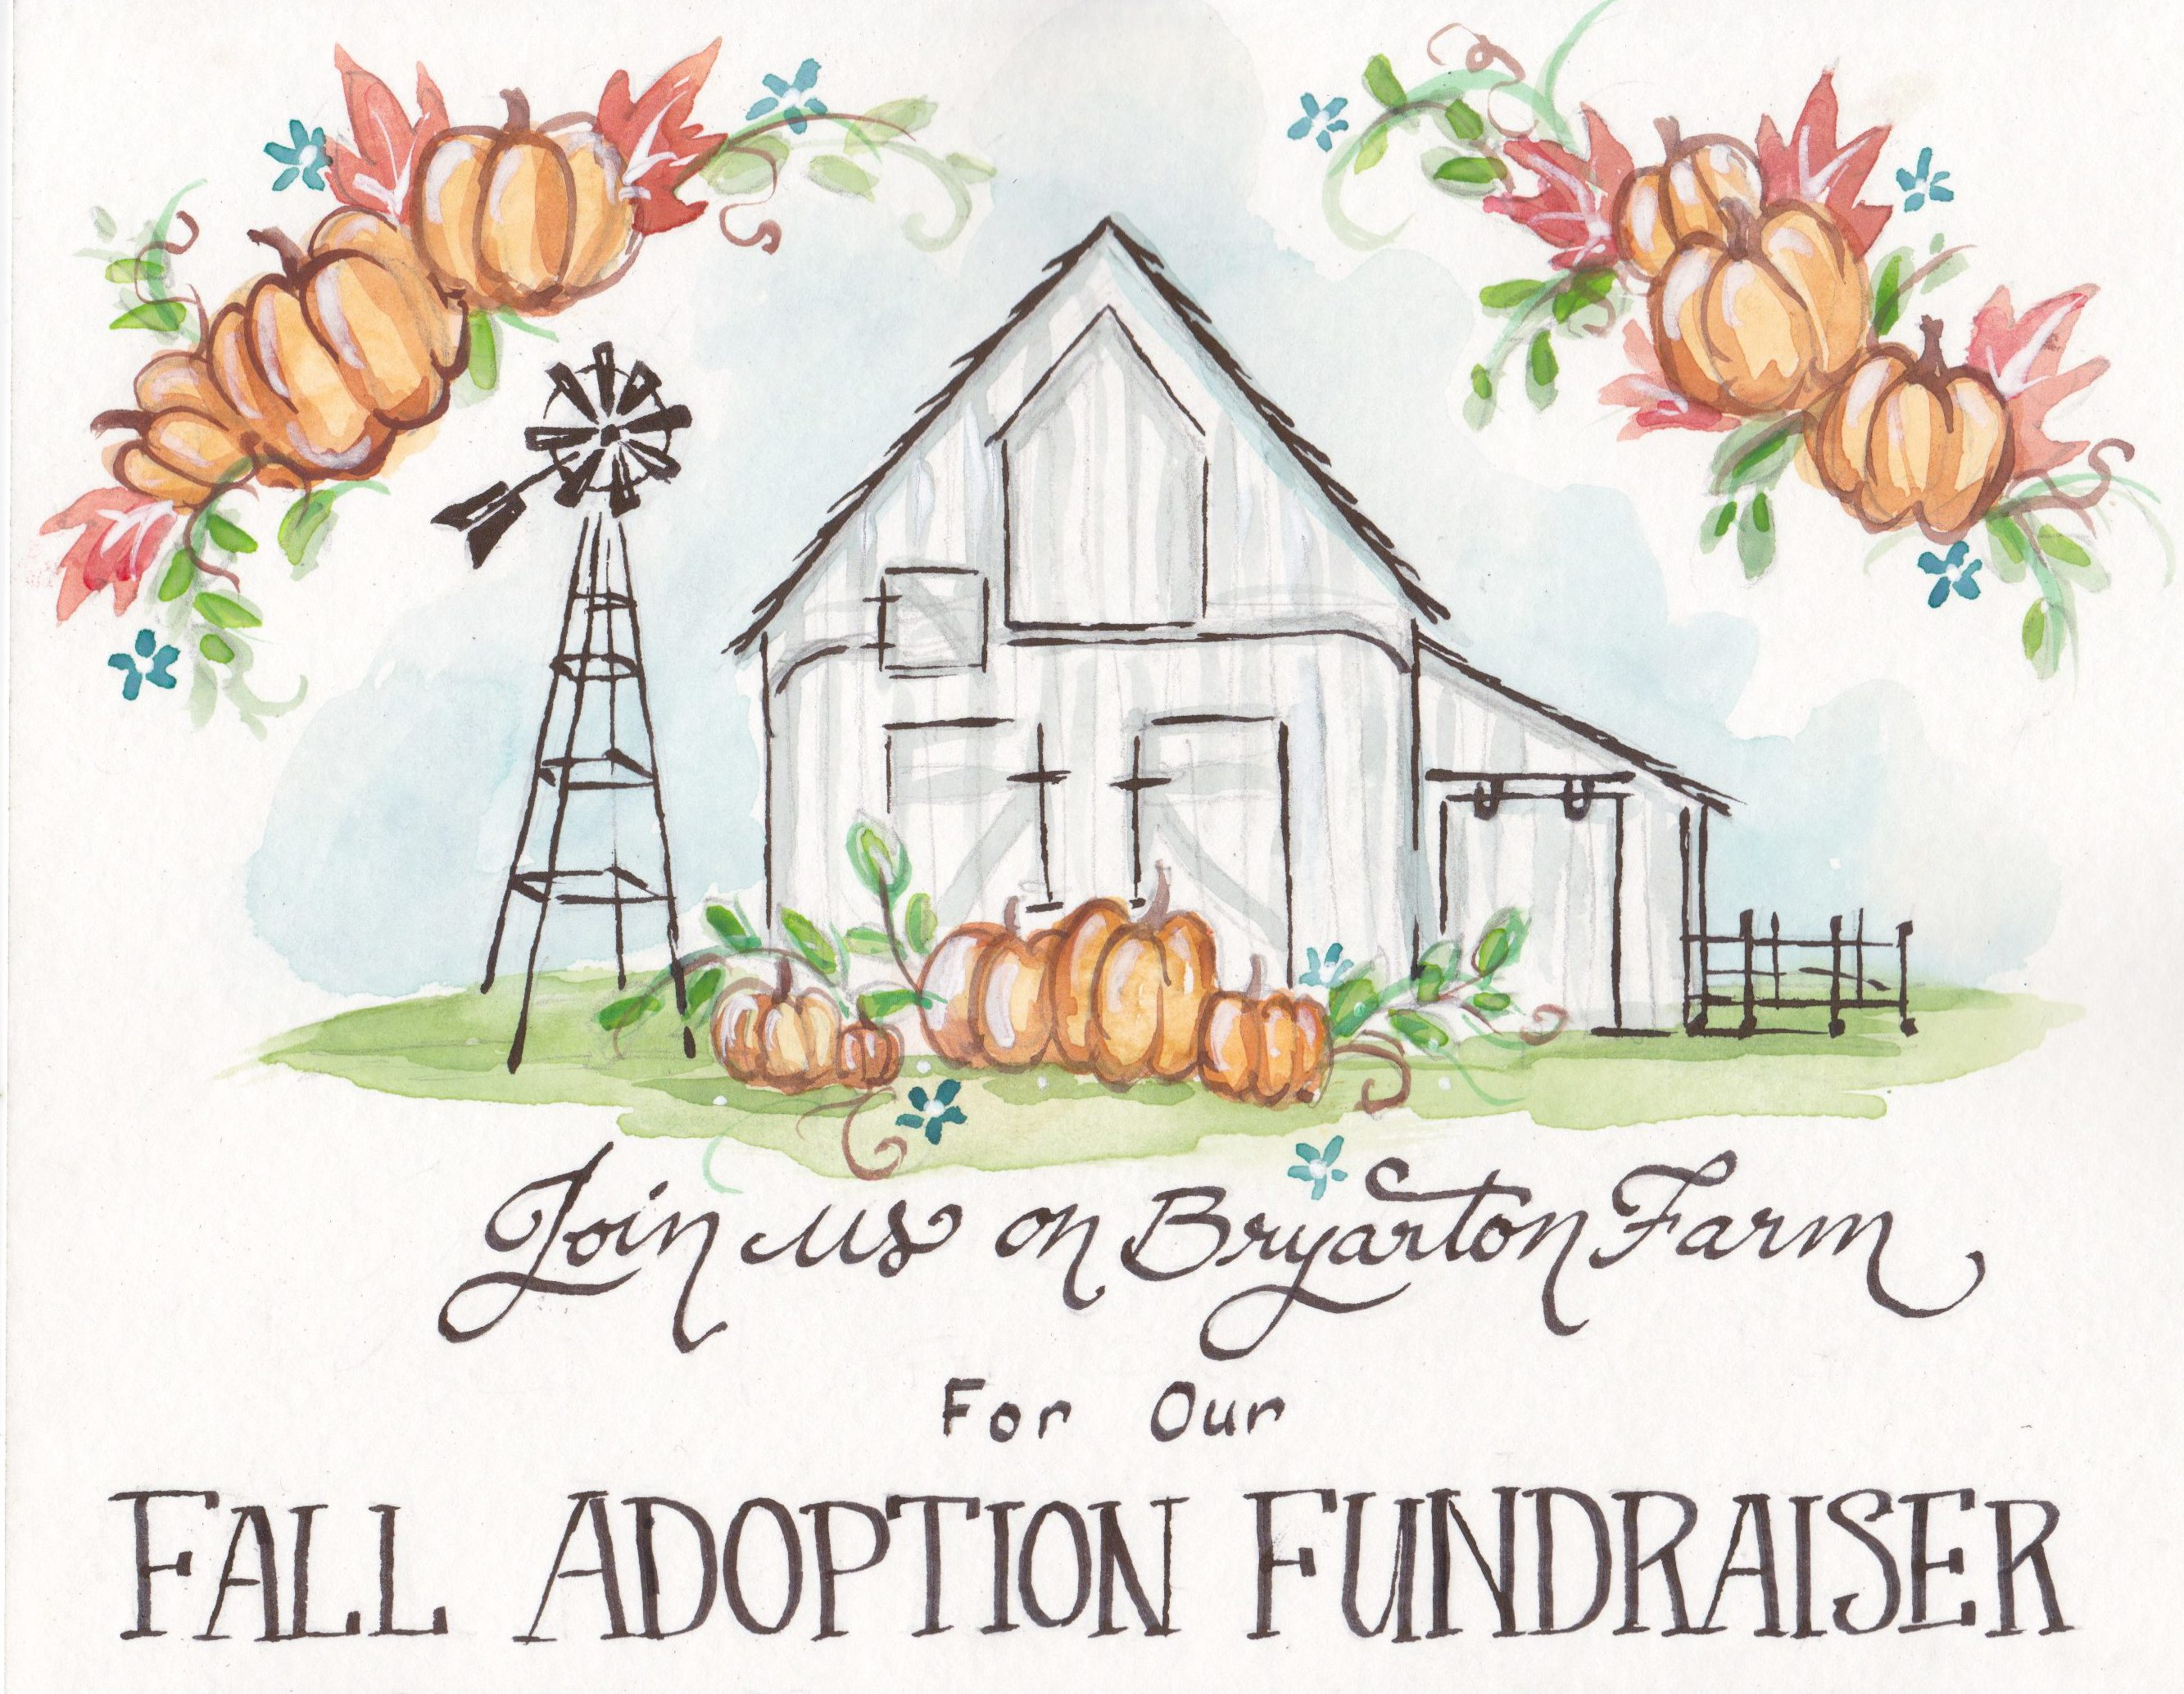 Bryarton Farm | Joining Arms to Bring Our Baby Home {Fall